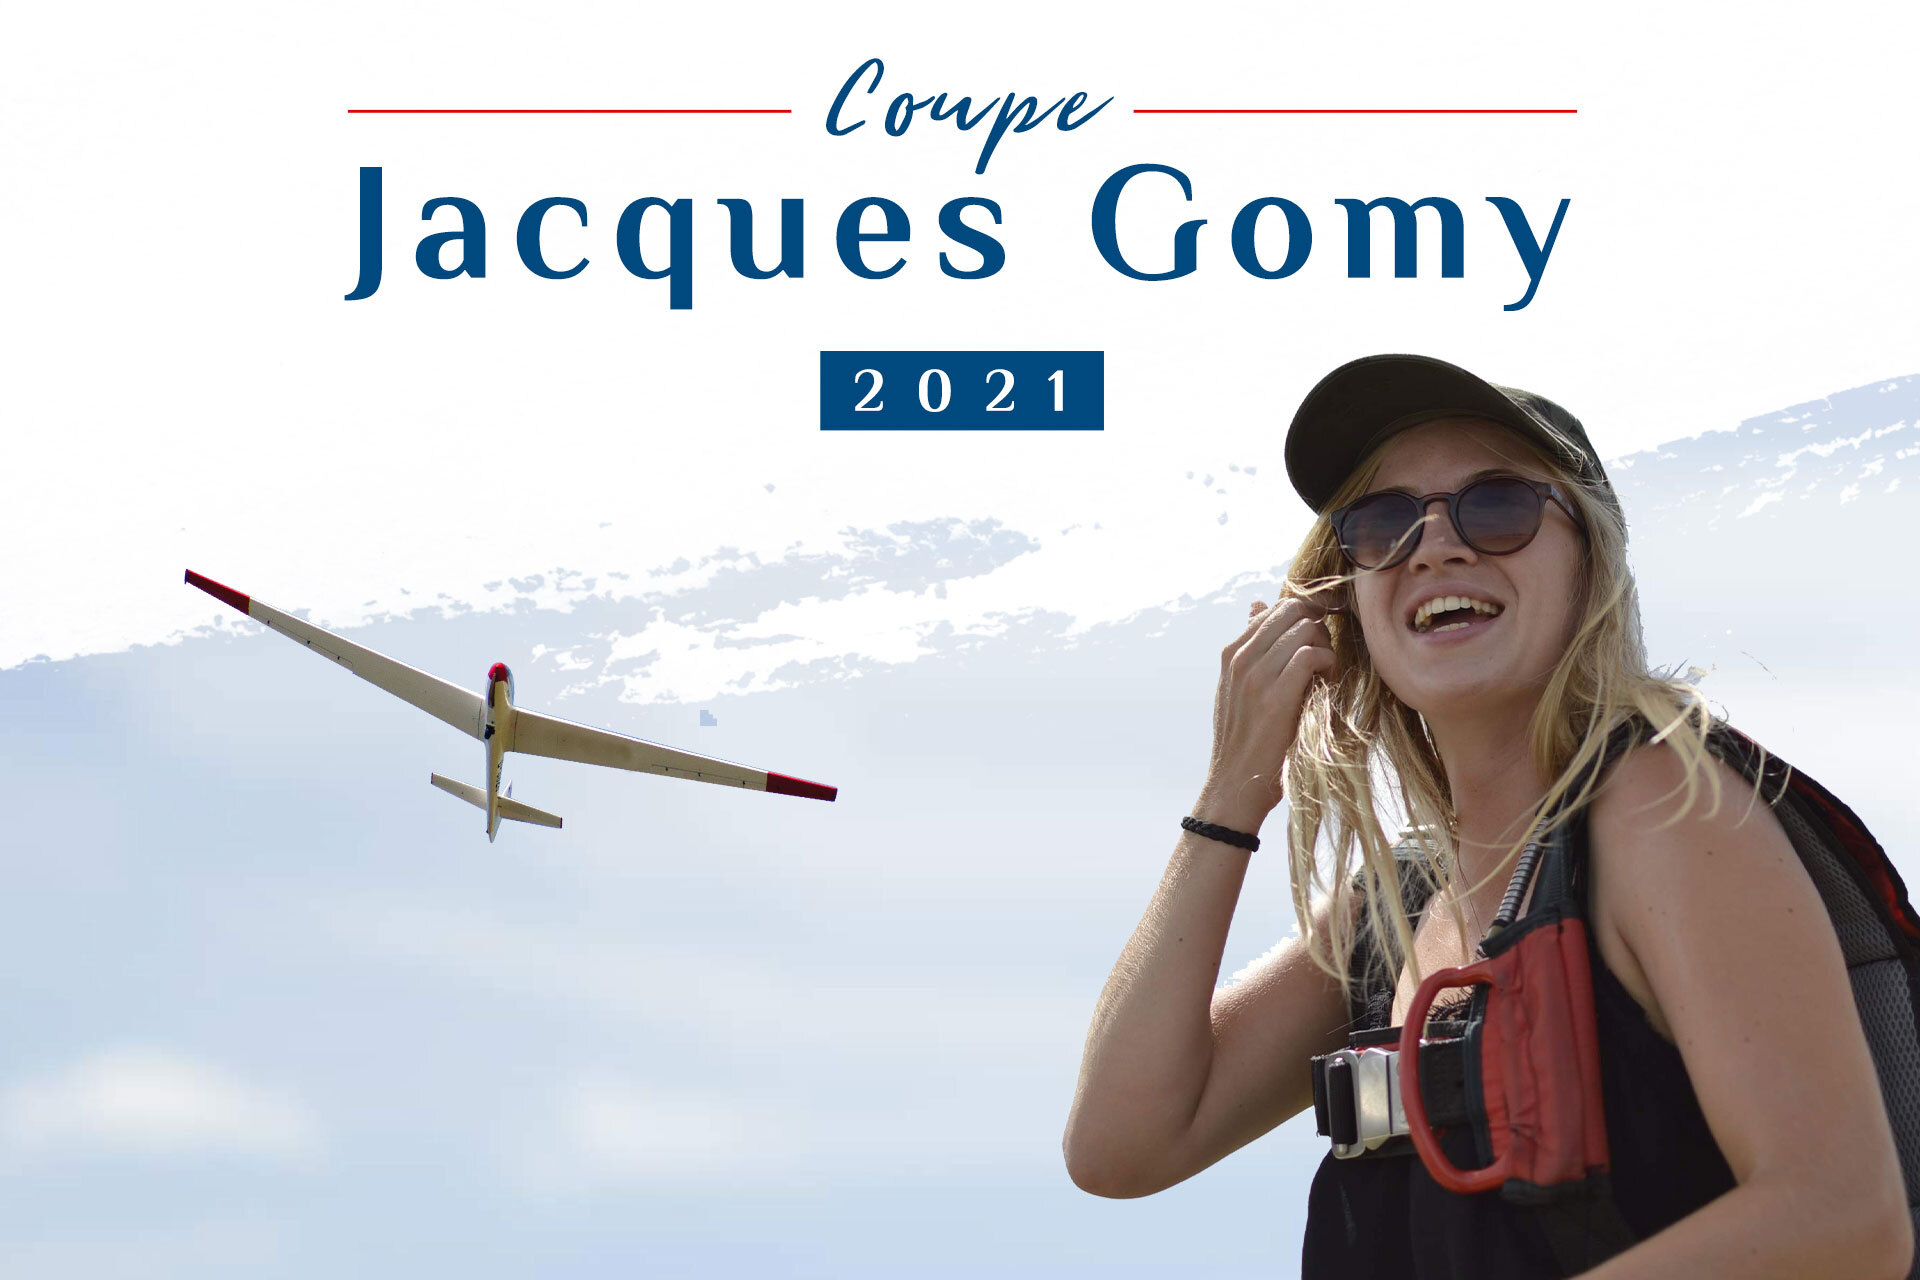 Coupe Jacques Gomy 2021